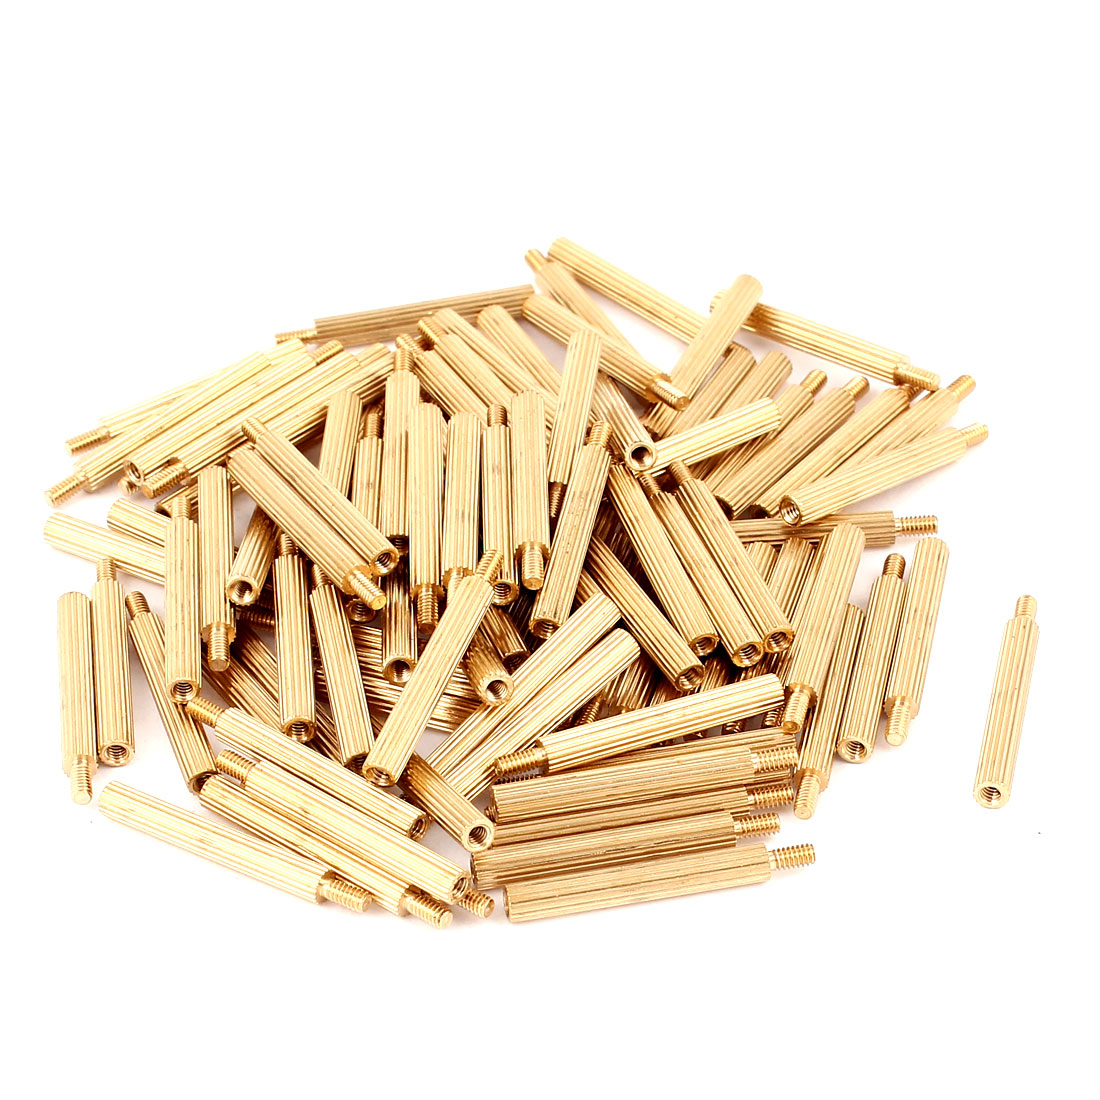 100pcs M2 22mm+4mm Female to Male Knurling Brass Standoff Spacer Pillar for PCB Motherboard